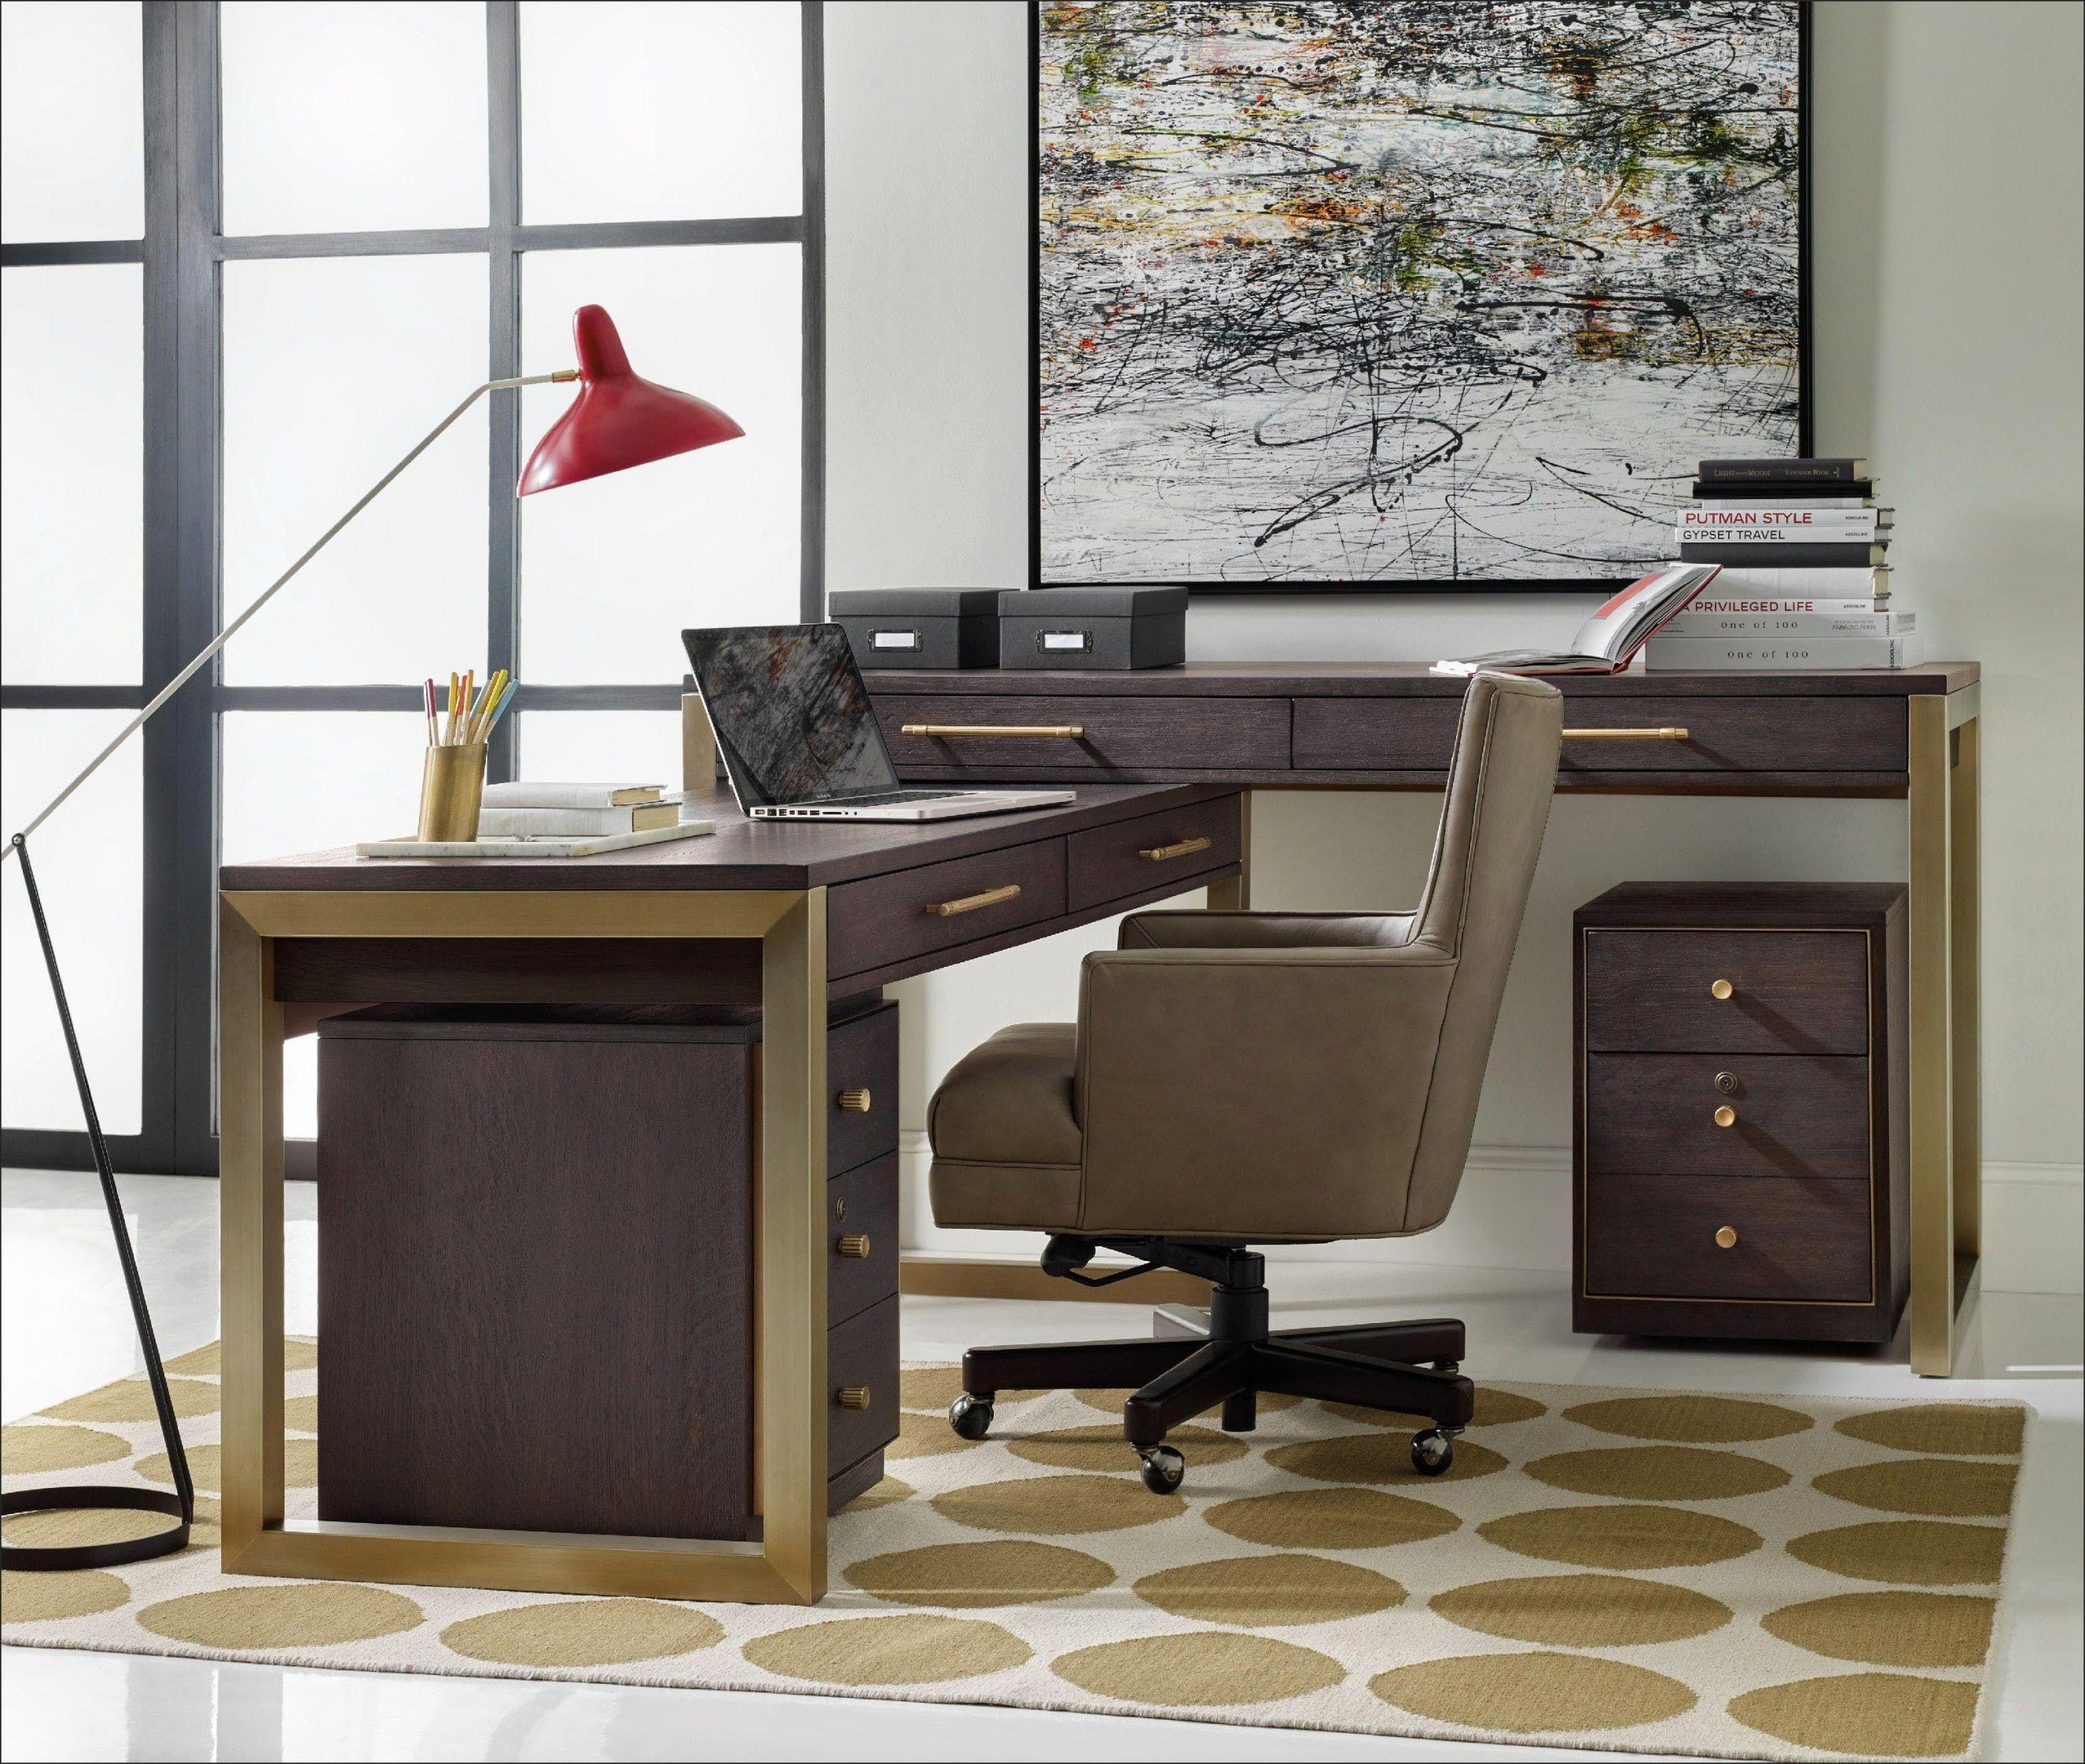 28 Charming Modern Industrial Desk Design Allowed To Help My Own